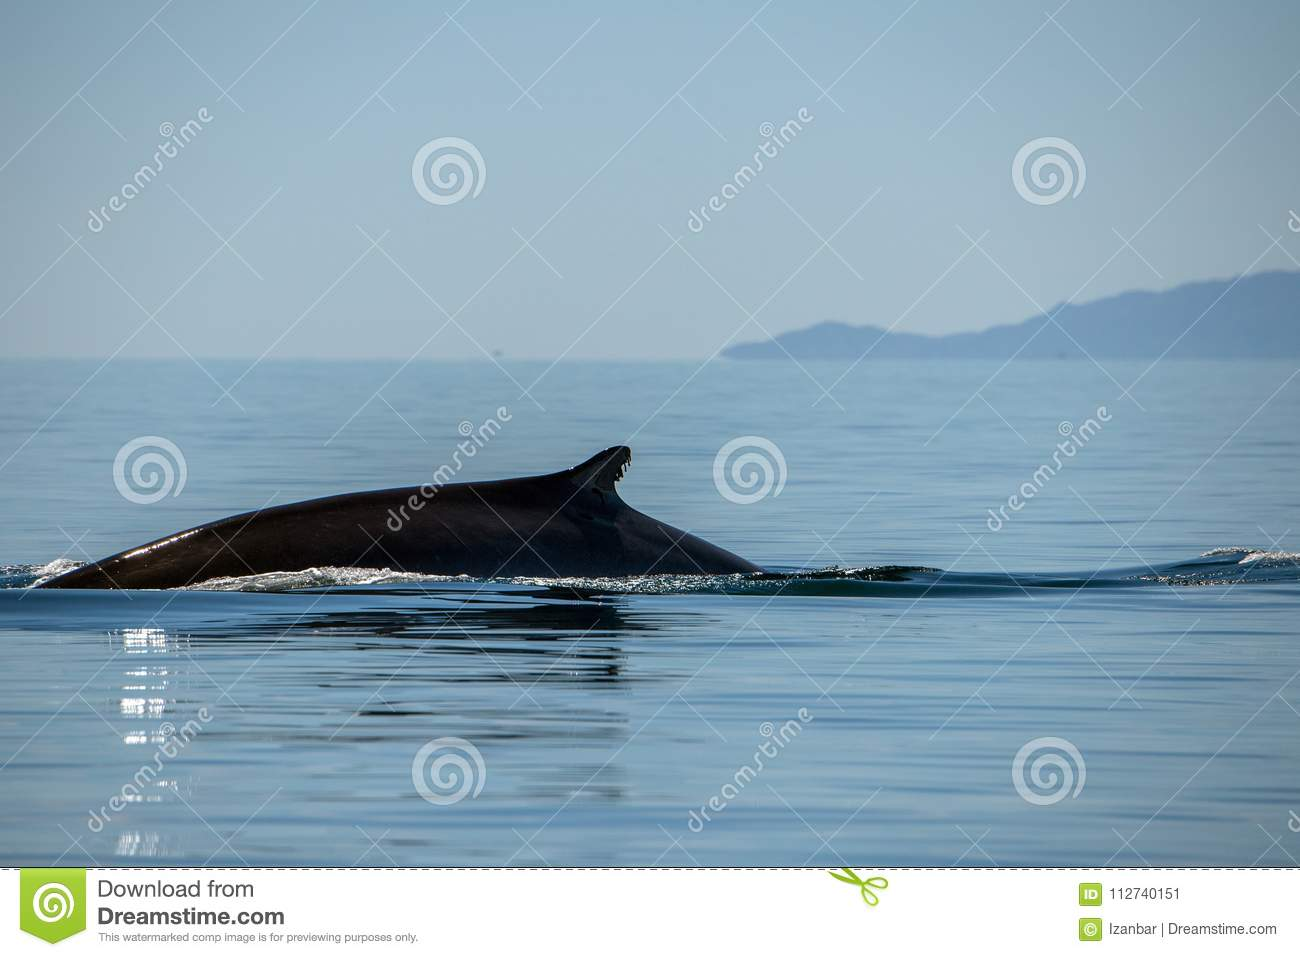 Blue Whale the biggest animal in the world